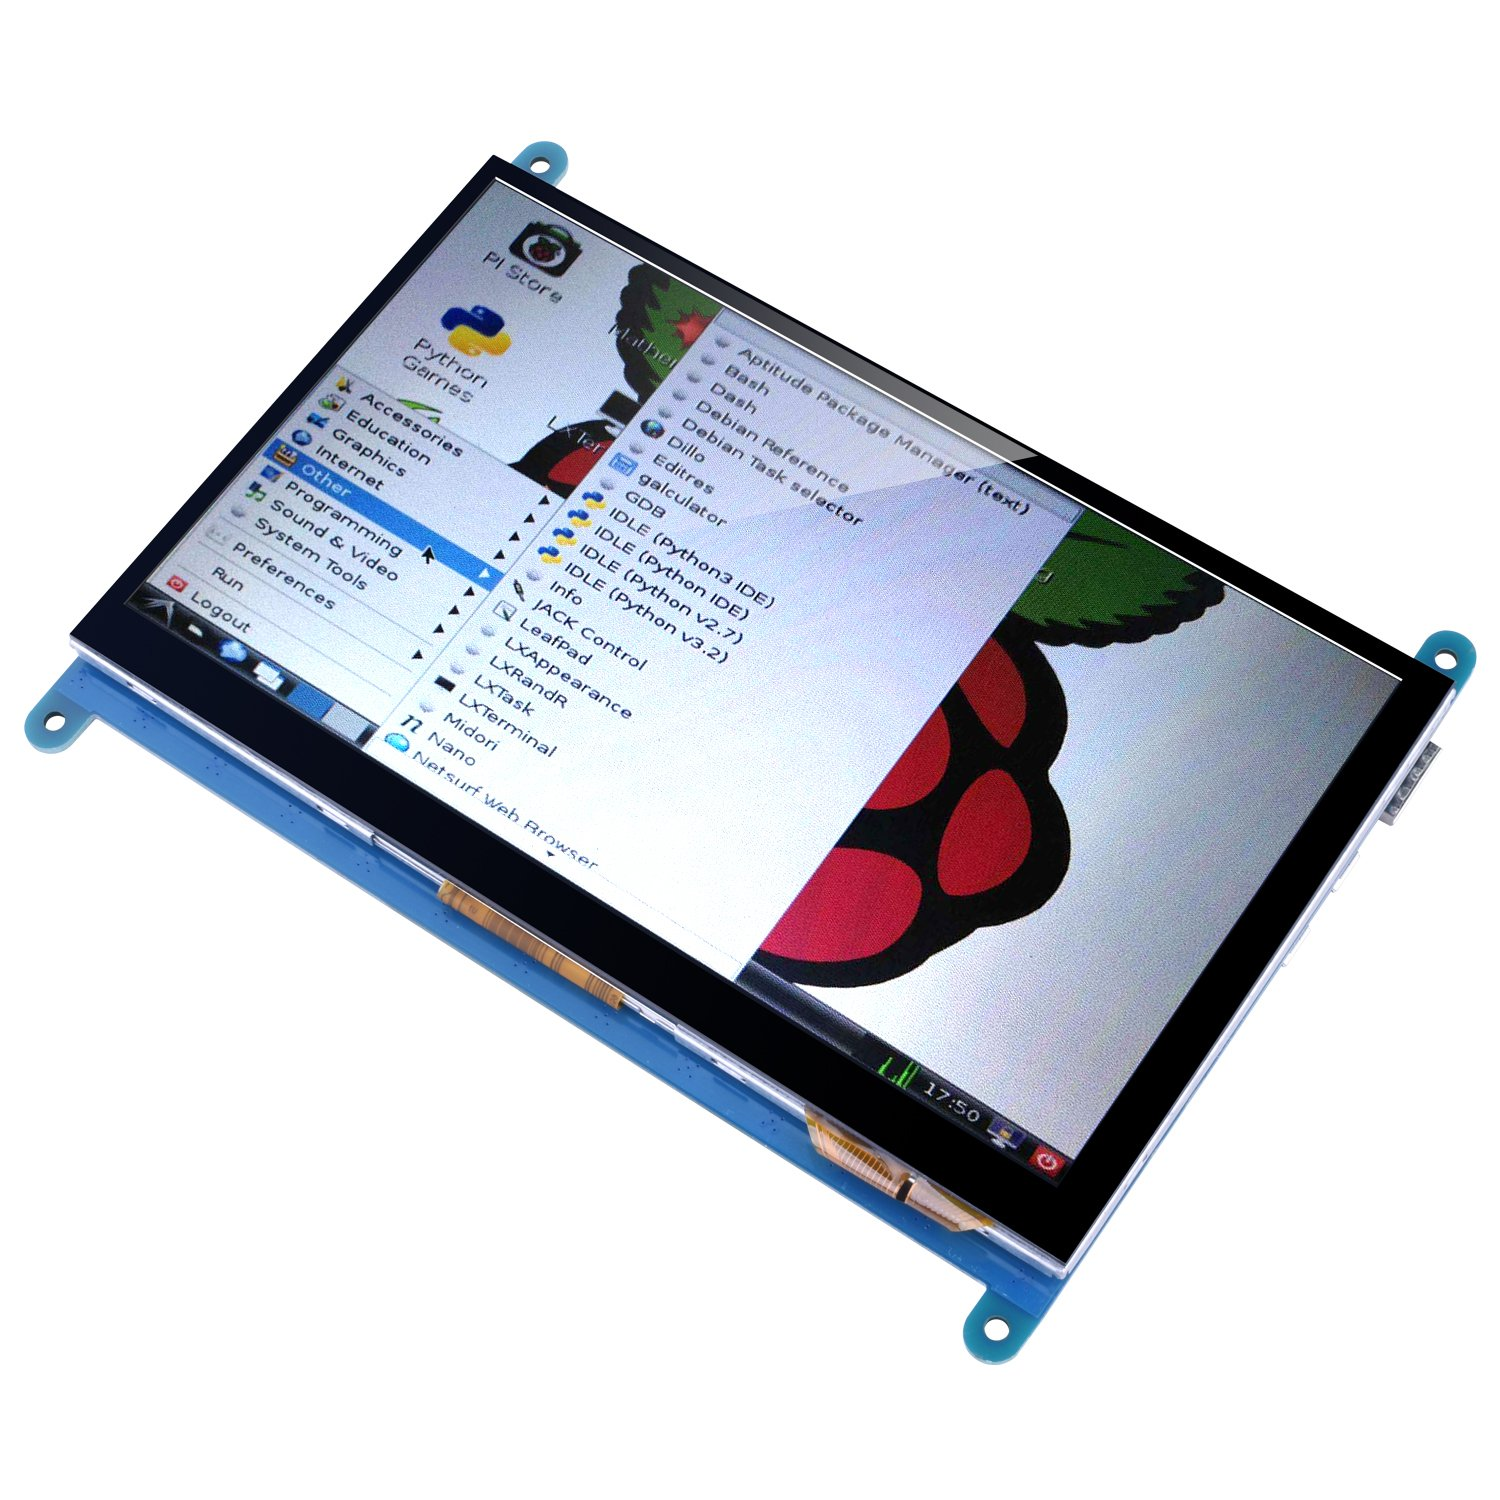 Kuman 7 Inch Capacitive Touch Screen TFT LCD Display HDMI Module 800x480 for Raspberry Pi 3 2 Model B and RPi 1 B+ A BB Black PC Various Systems SC7B (7 Inch Raspberry Pi Touch Screen) by Kuman (Image #2)